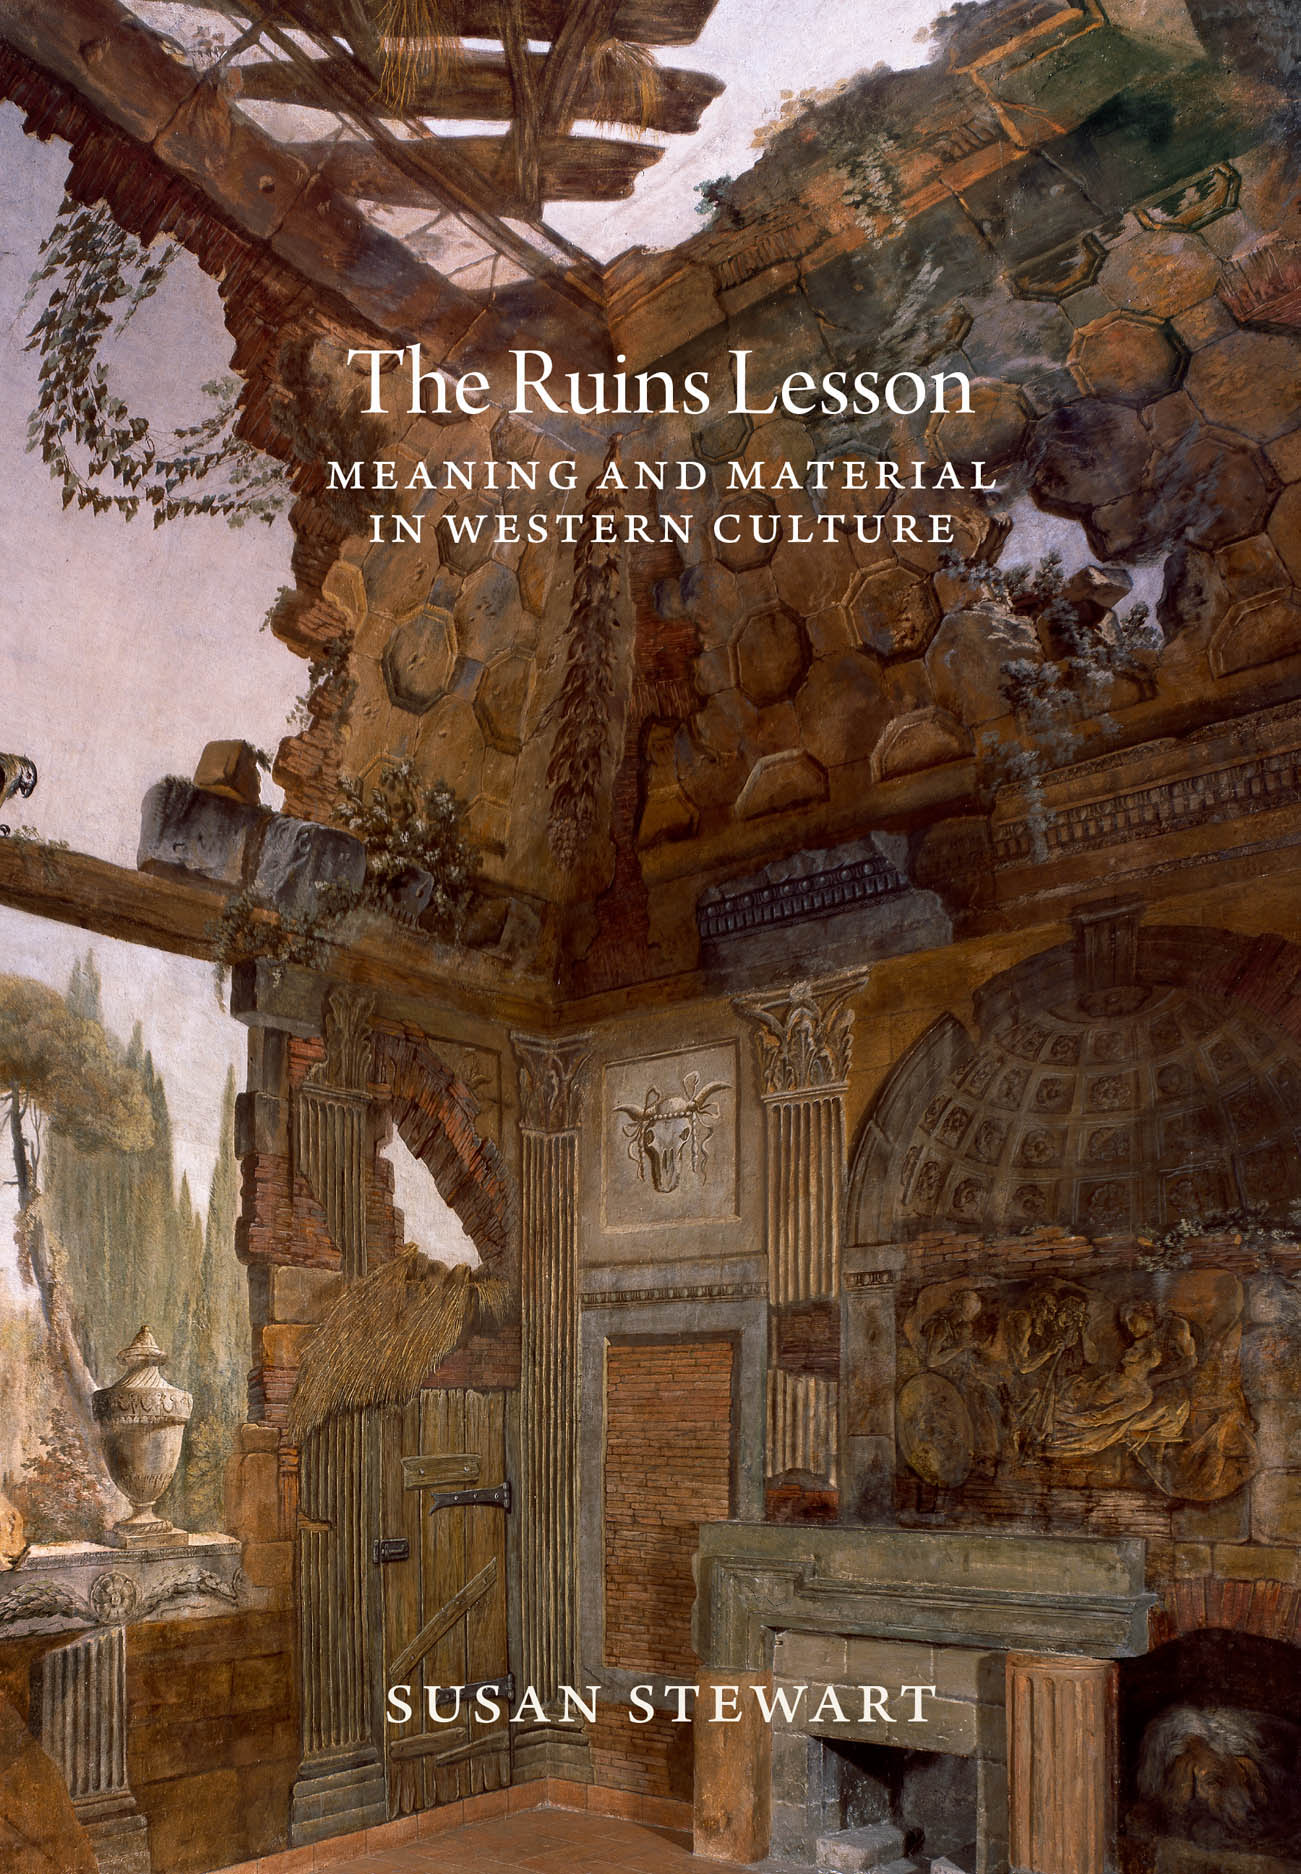 The Ruins Lesson